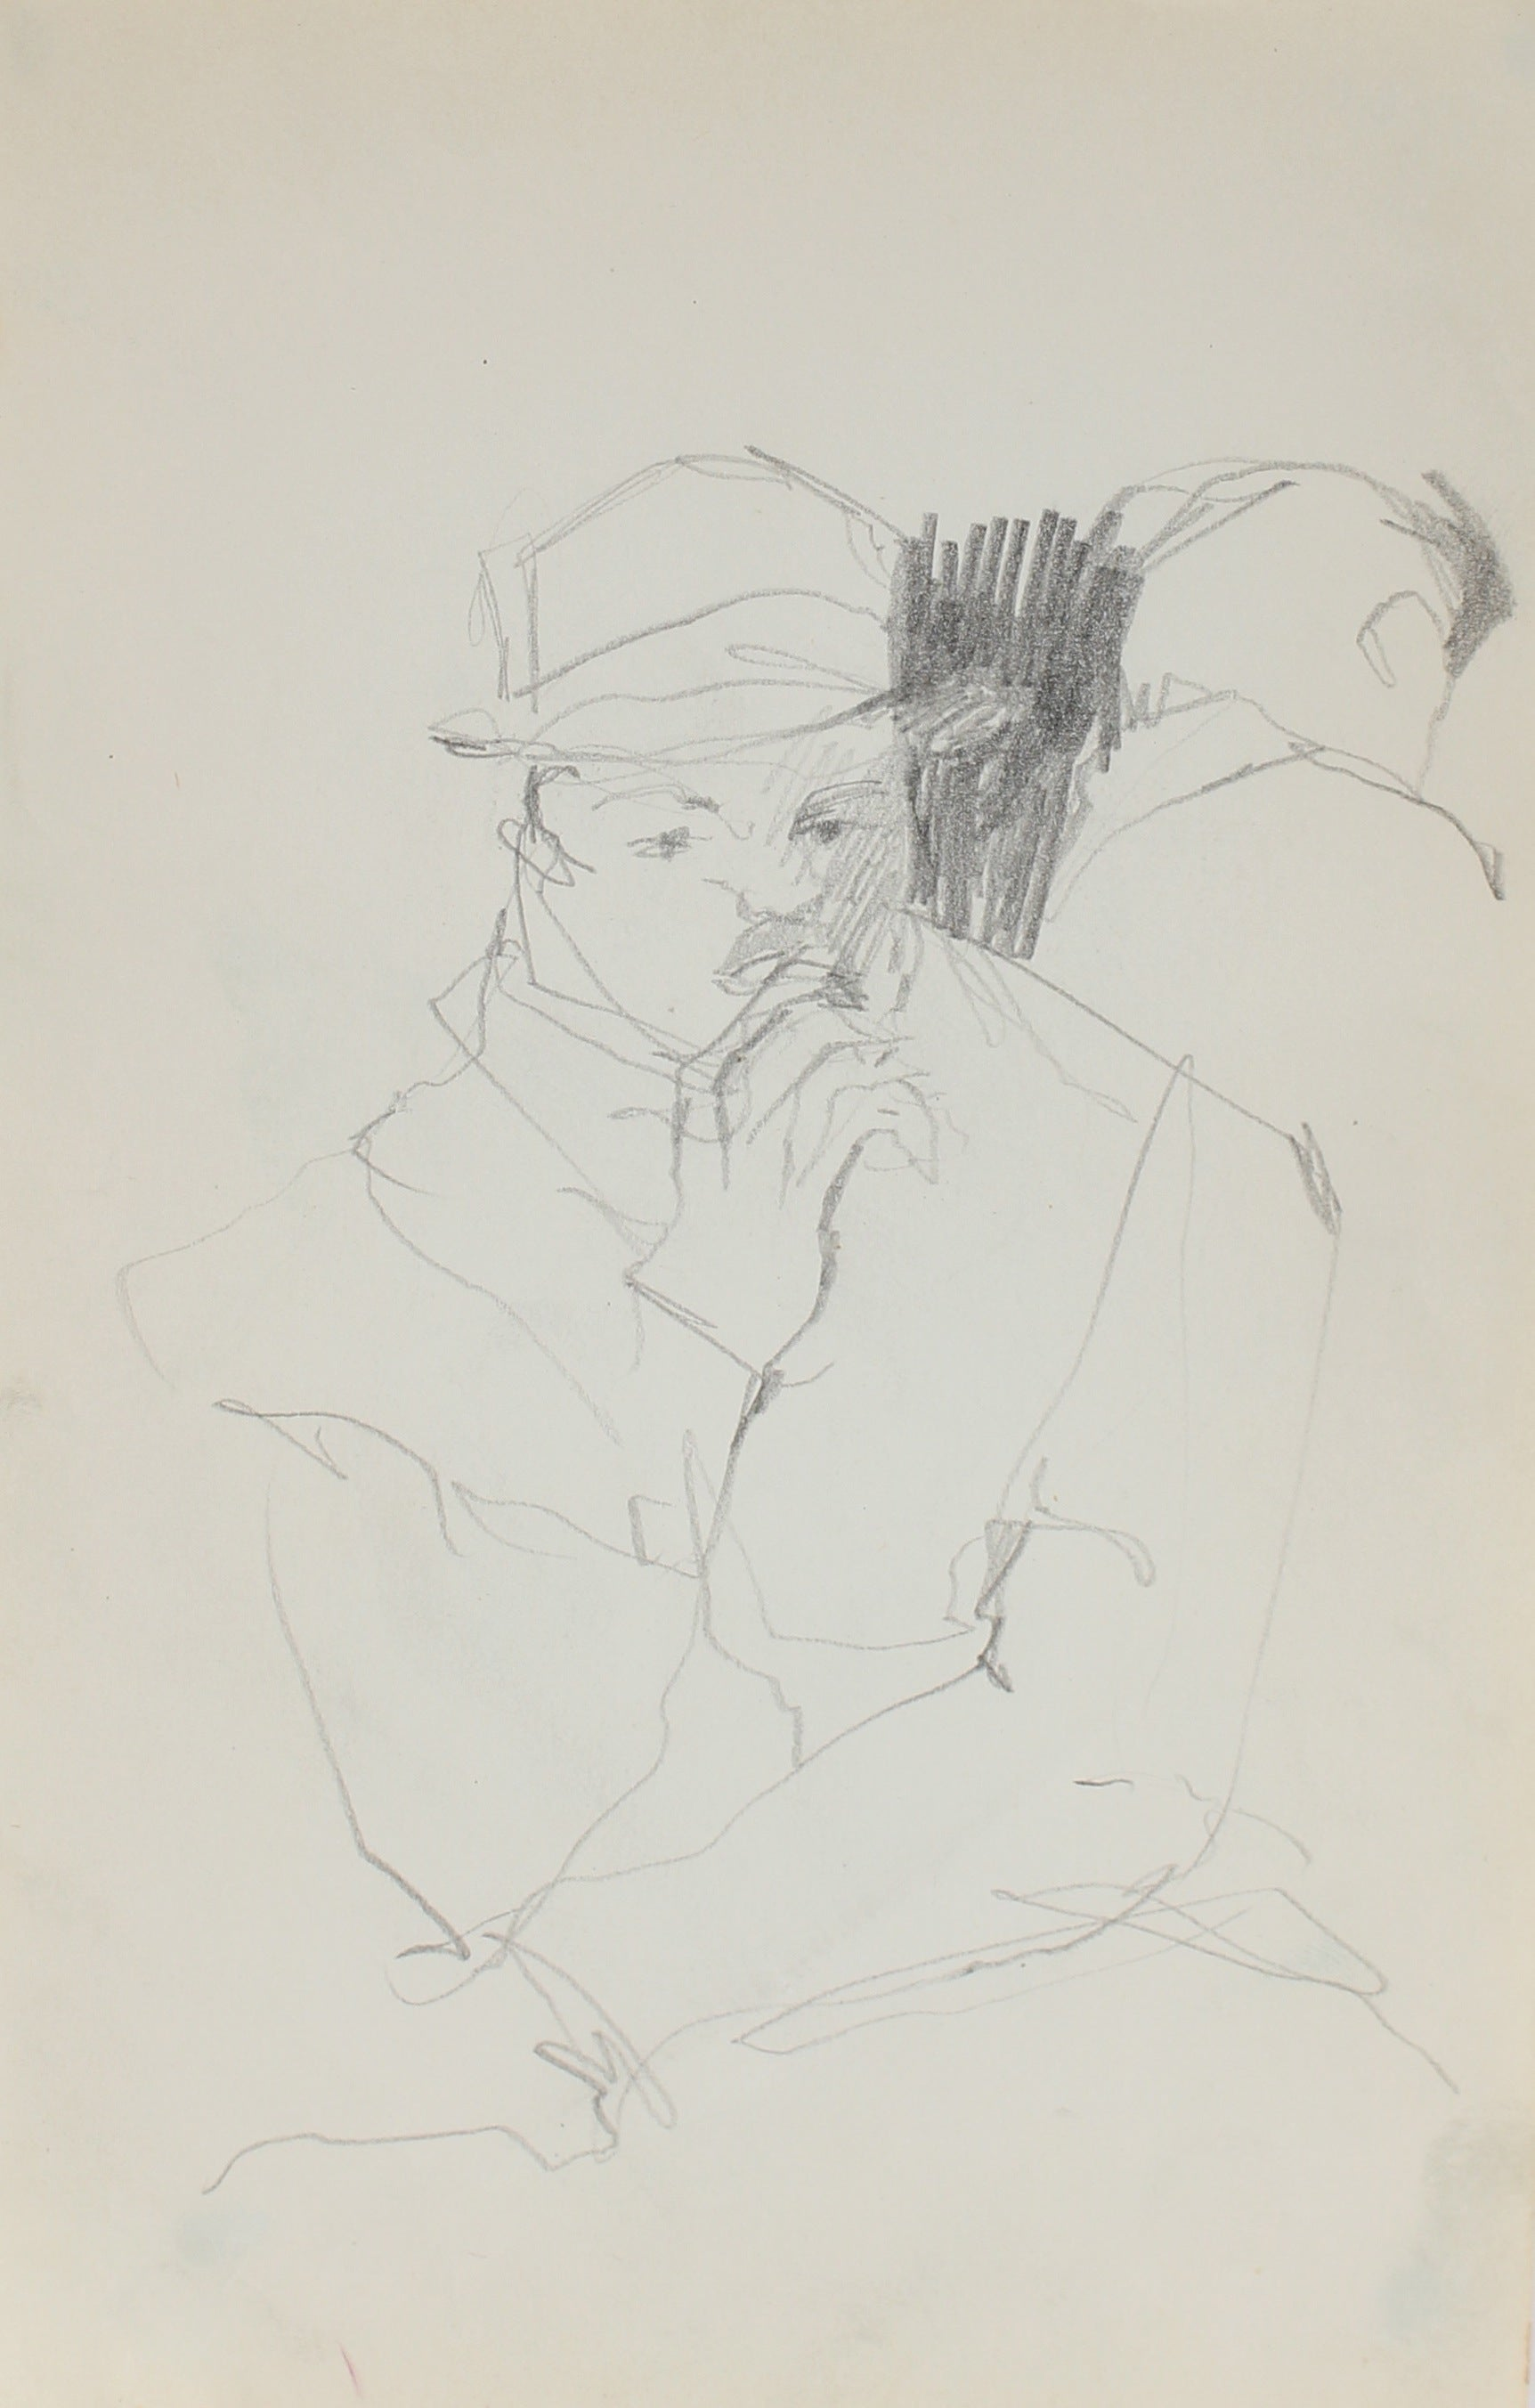 Modernist Sketch of a Man<br>Graphite, 1950-60s<br><br>#0260